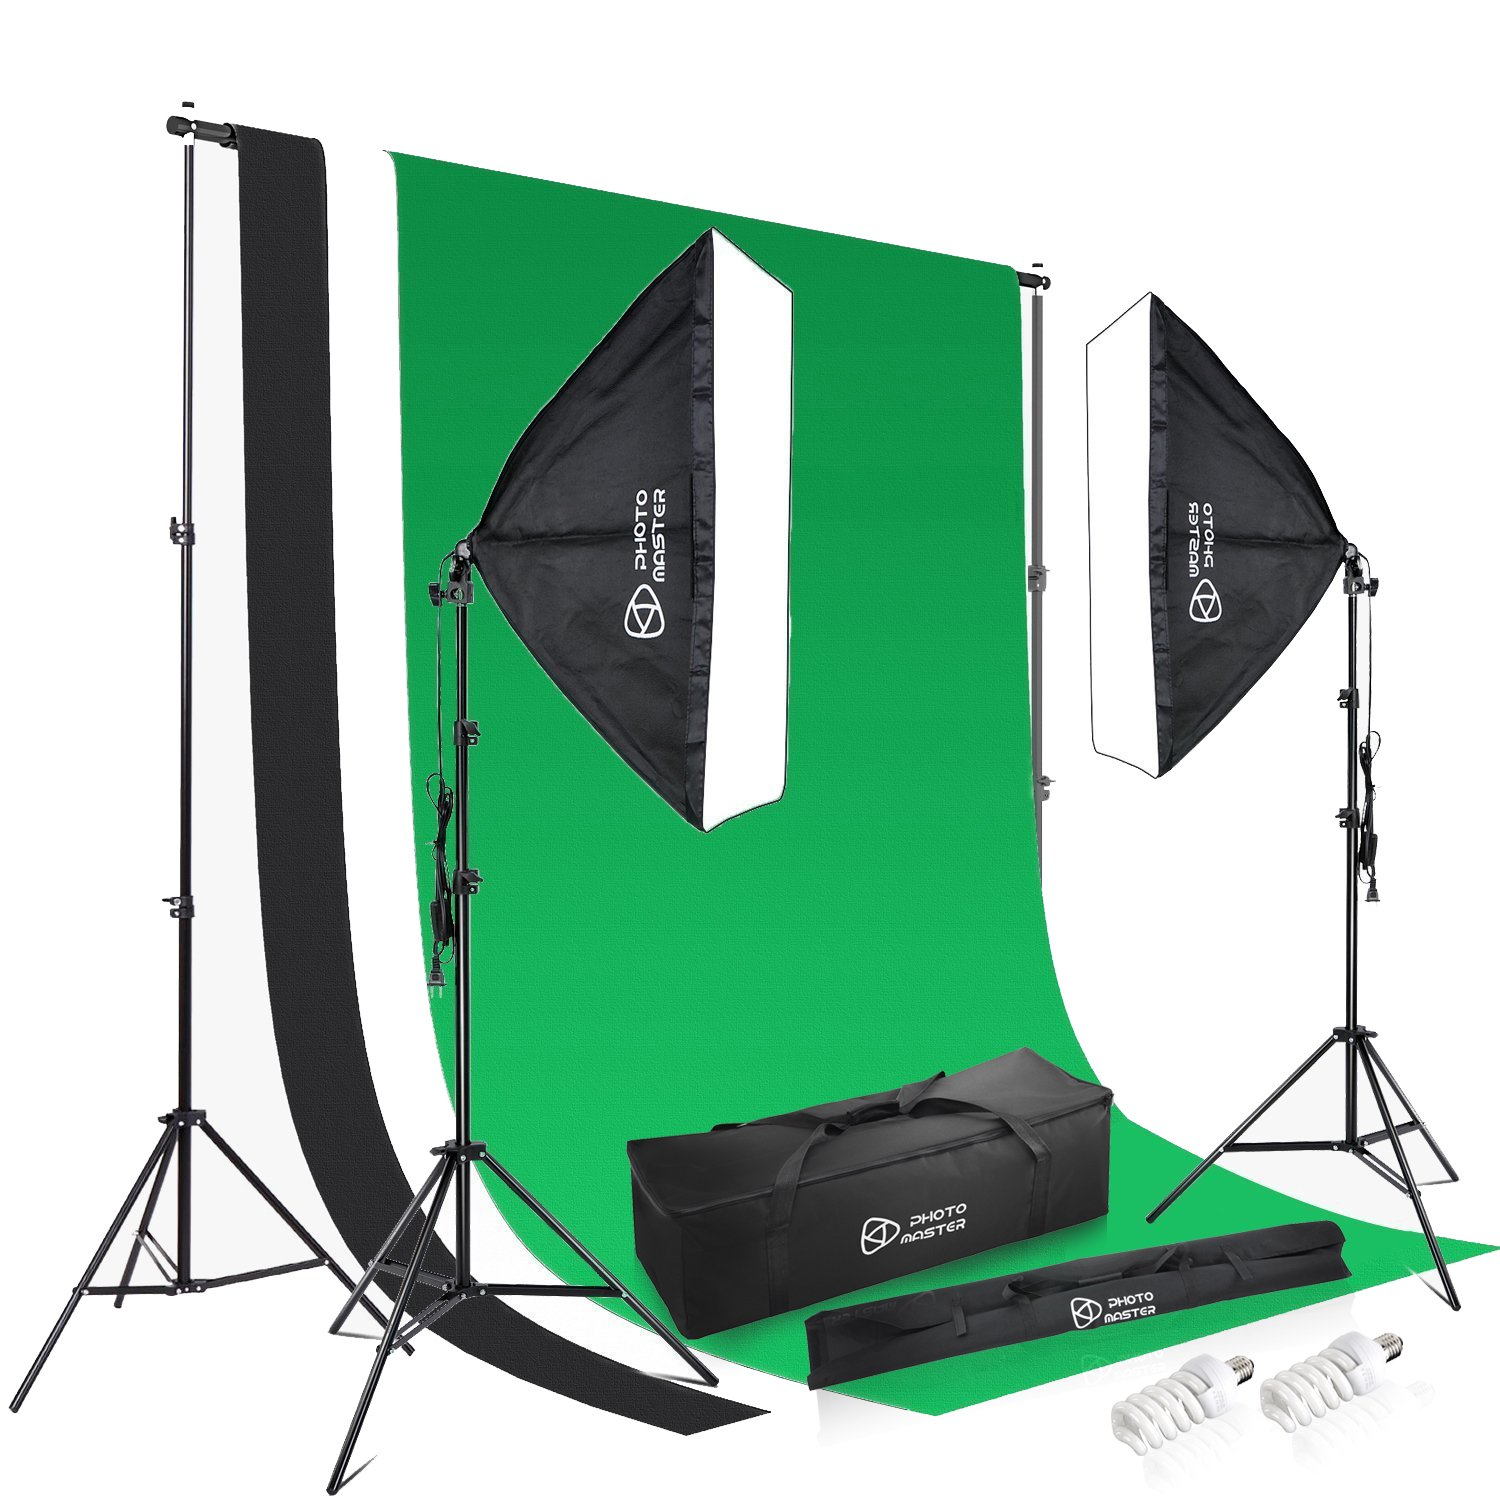 PHOTO MASTER Softbox 1350W Continuous Lighting Kit 5500K White Black Green Muslin Backdrop Stand Support Video Studio